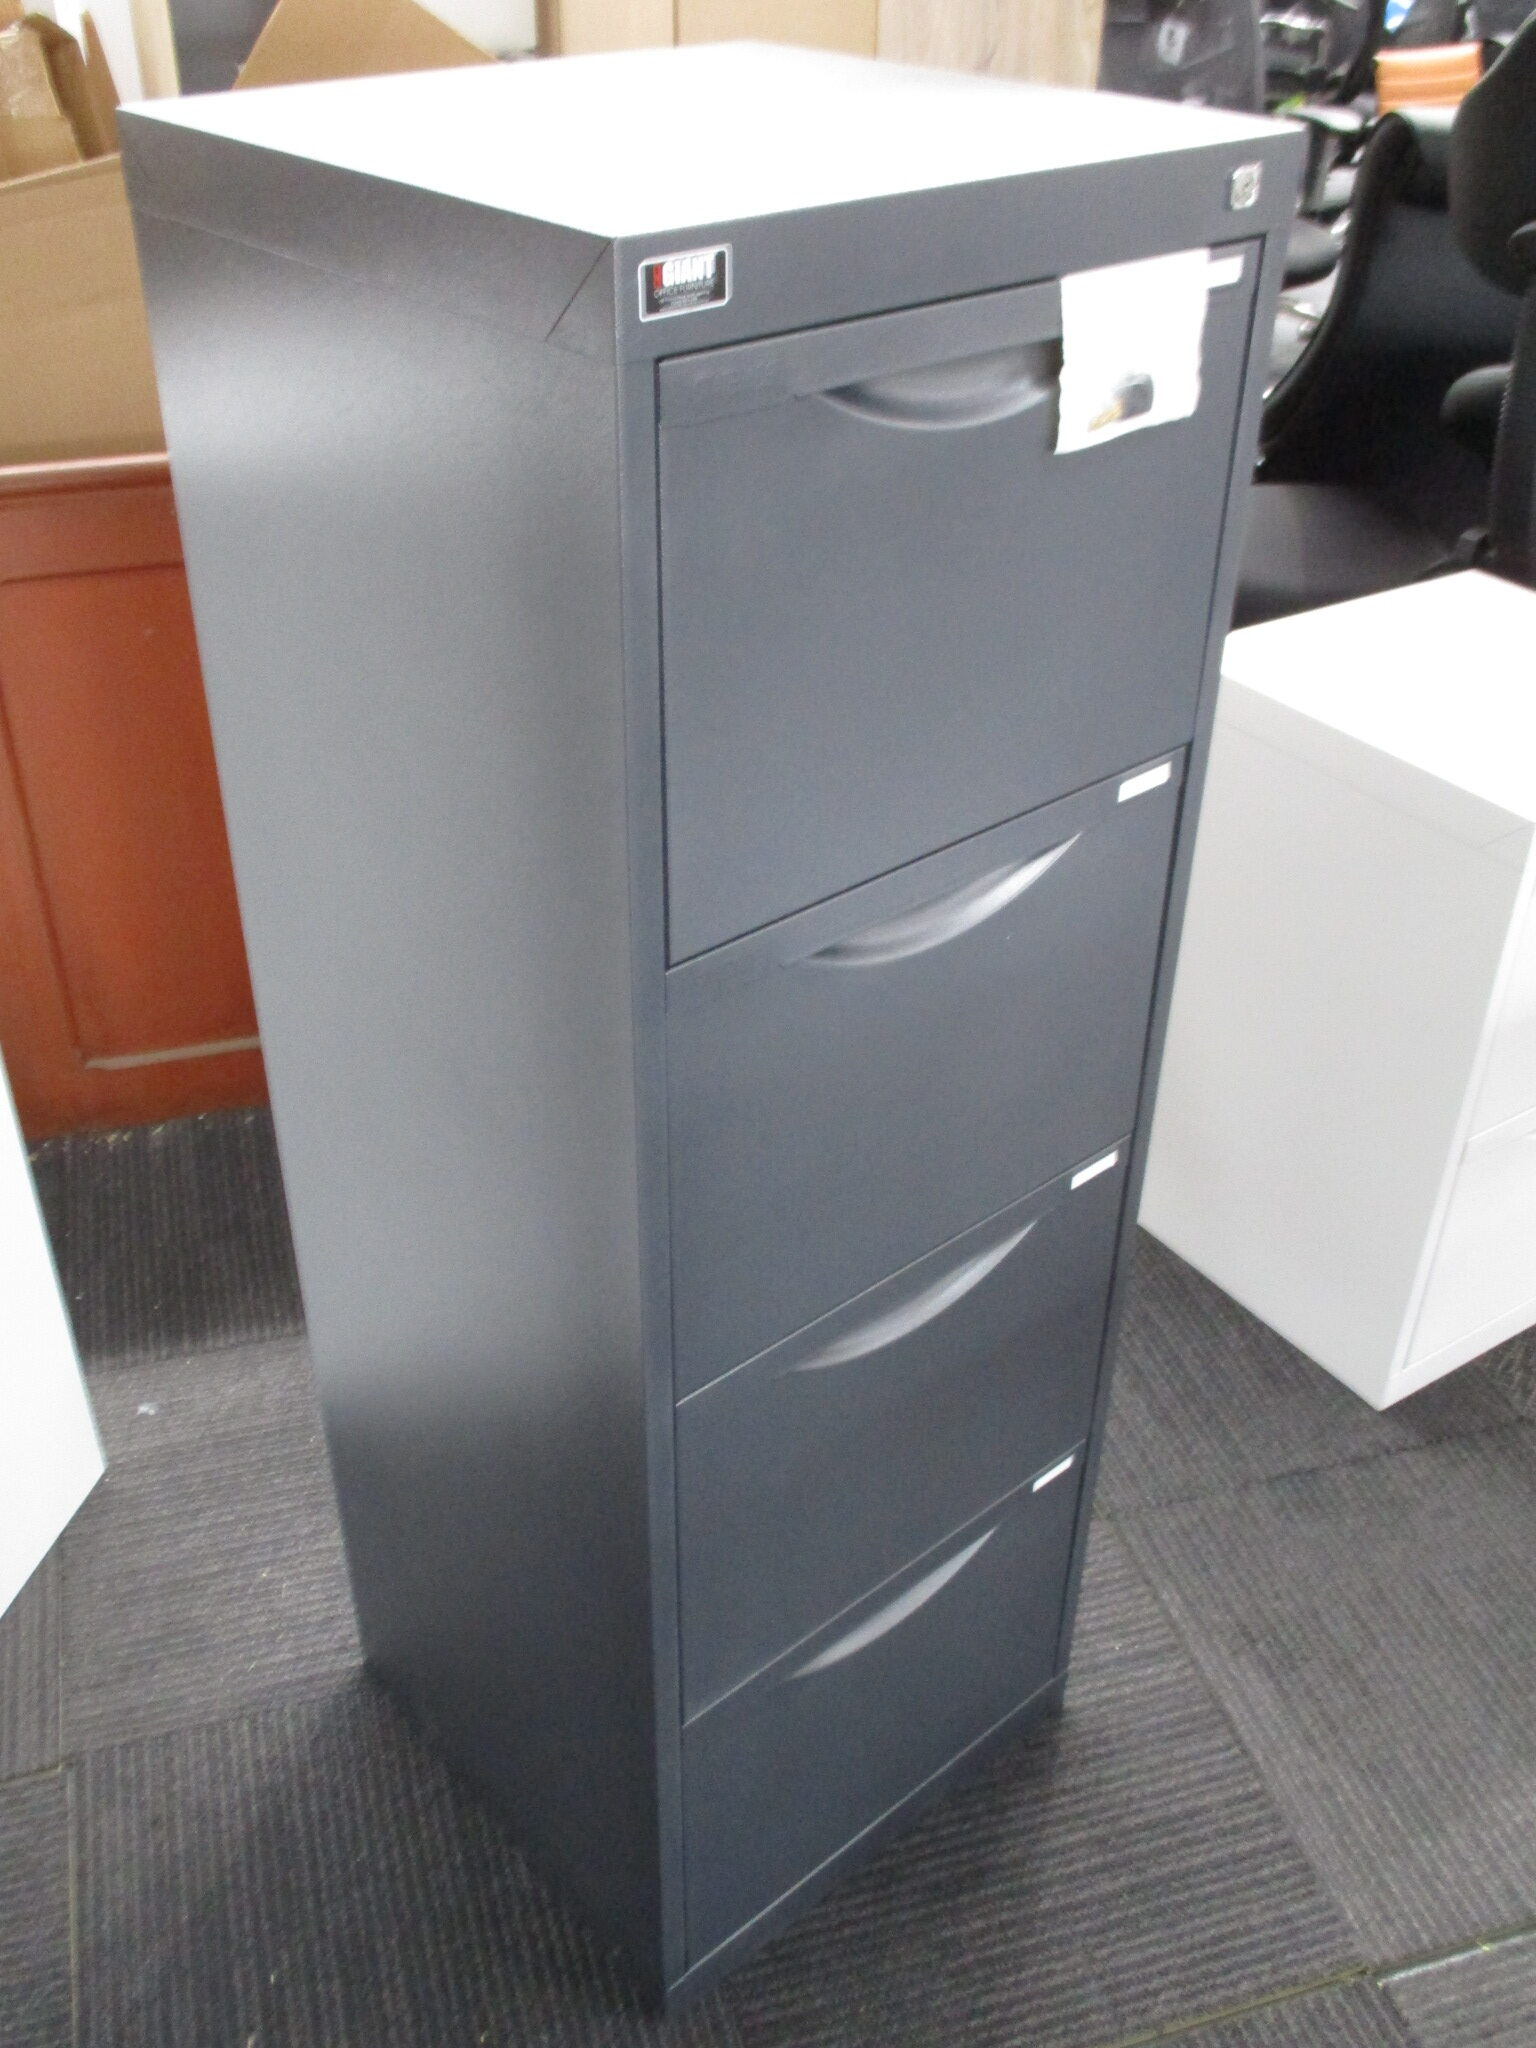 New Graphite Statewide Homefile 4 Drawer Filing Cabinet $325